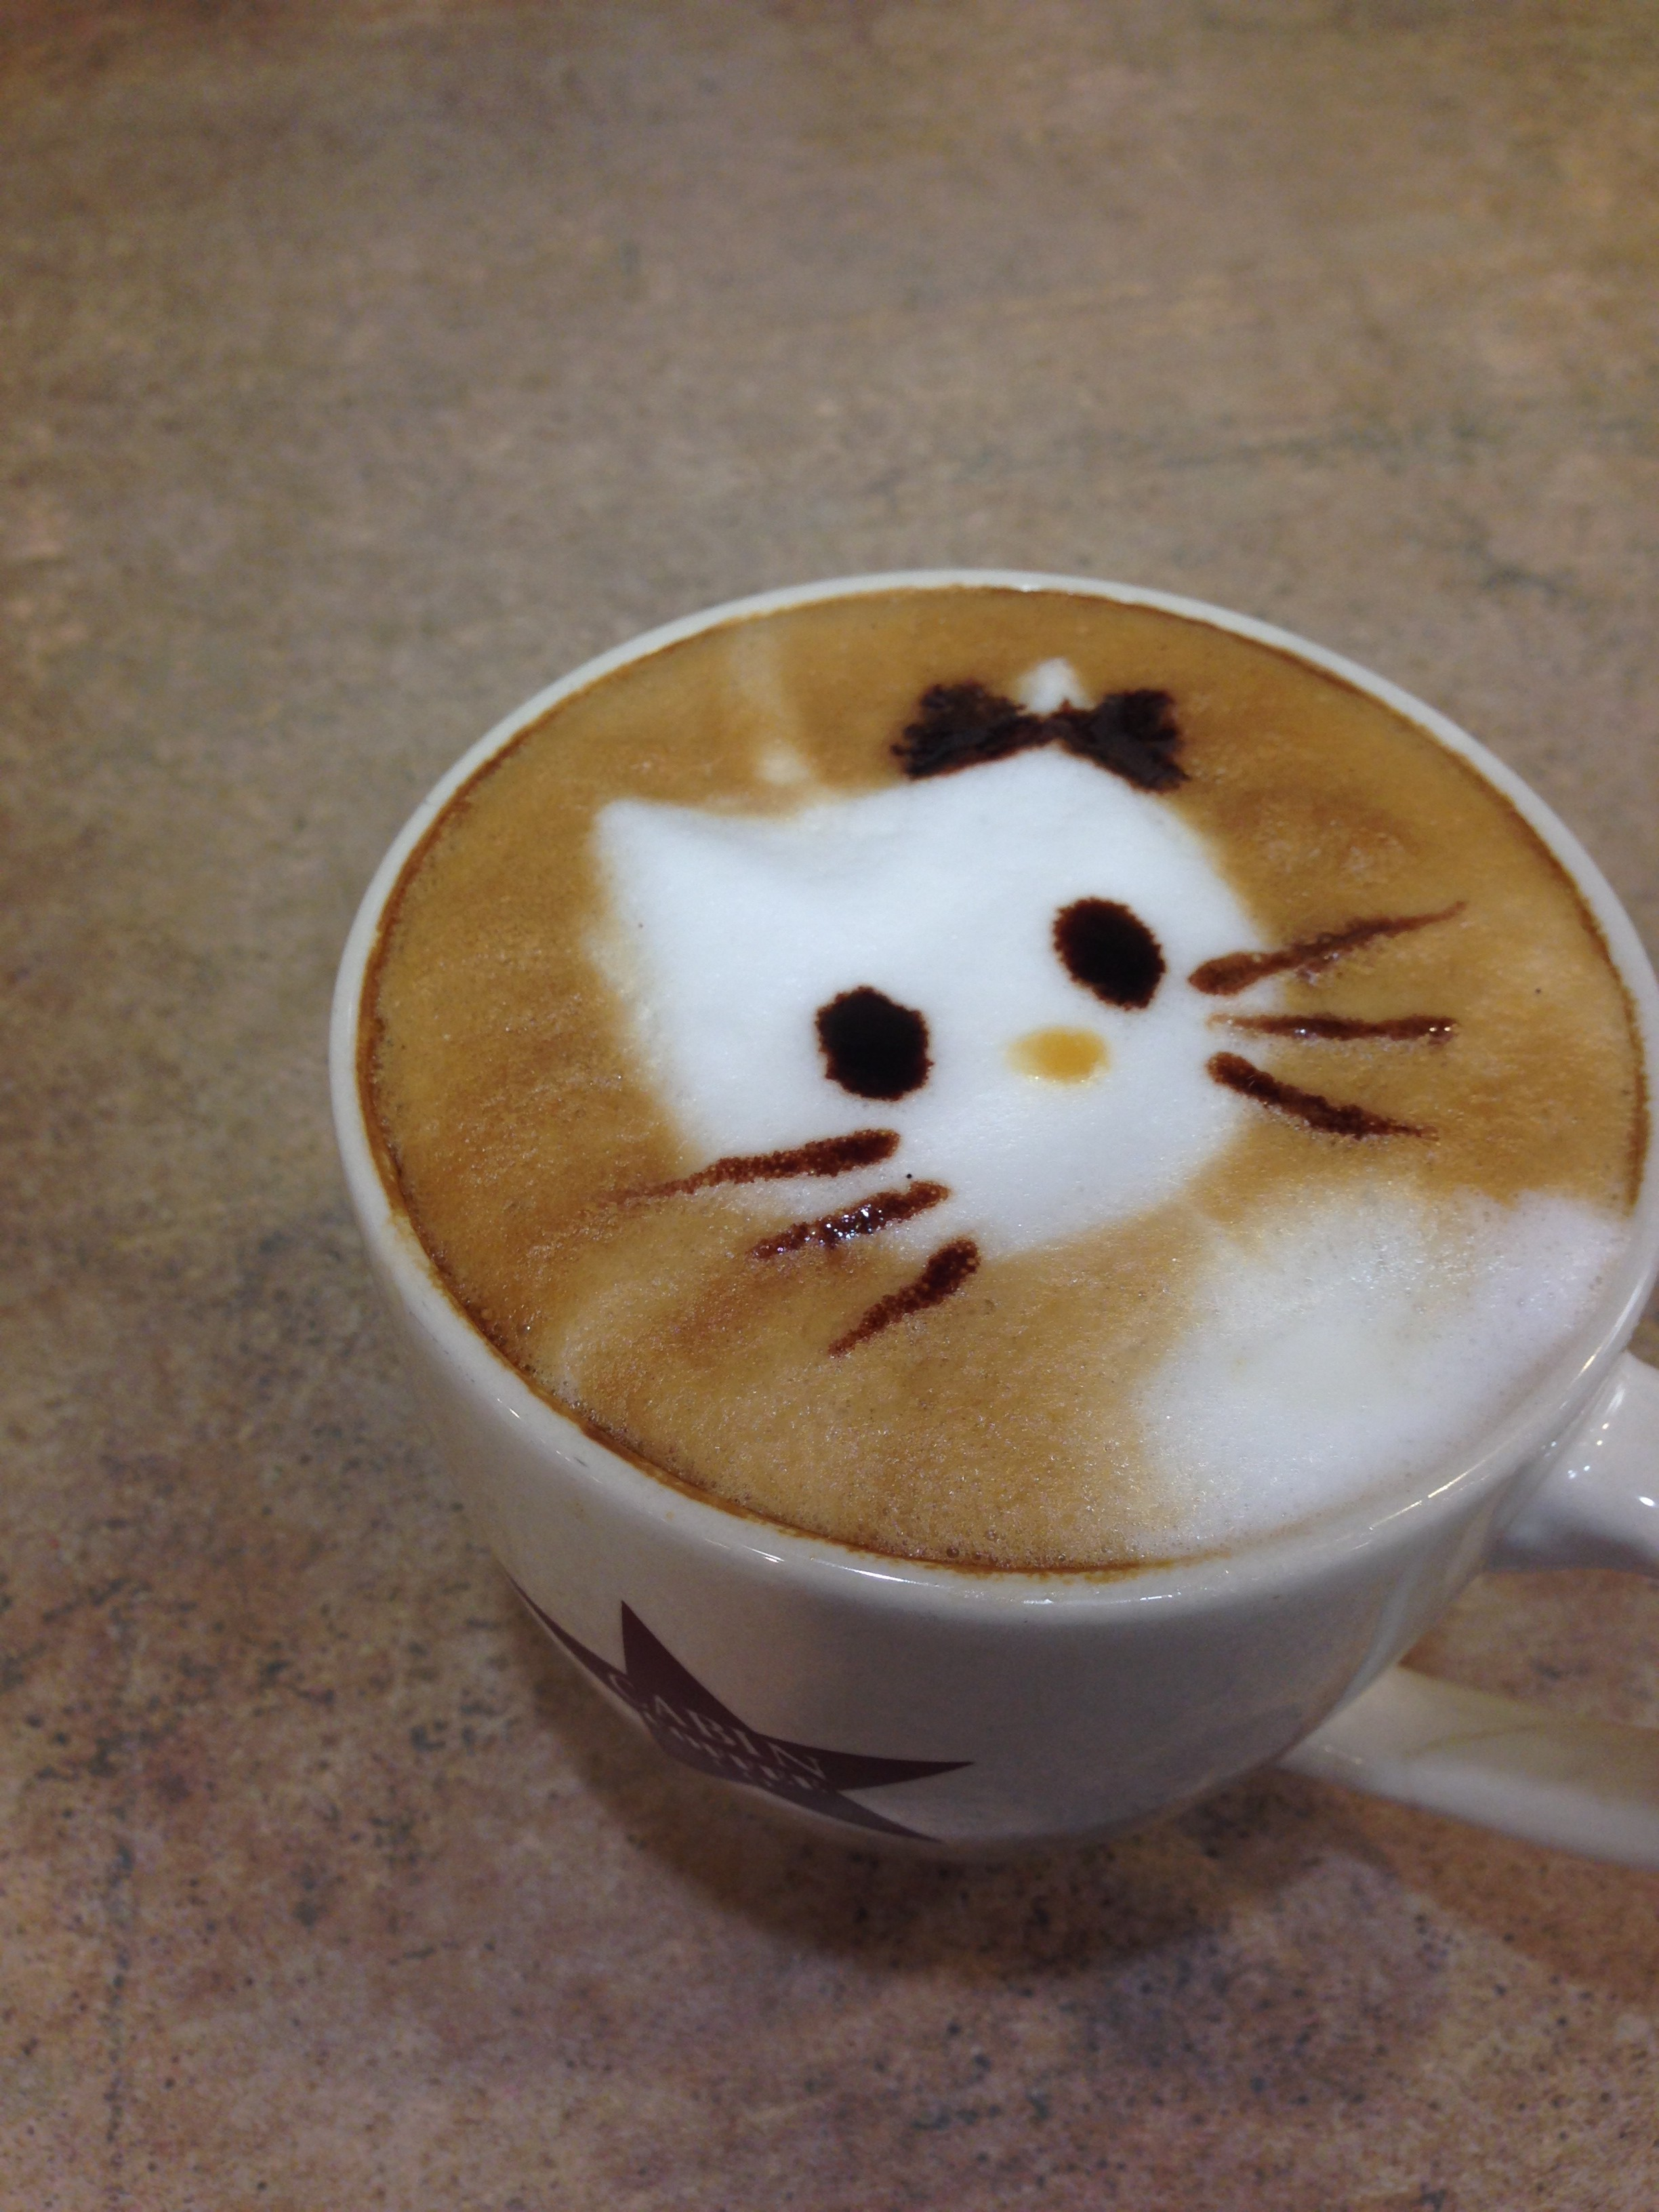 One of our Clear Lake baristas LOVES Hello Kitty, so our Mason City baristas made her a cute latte!